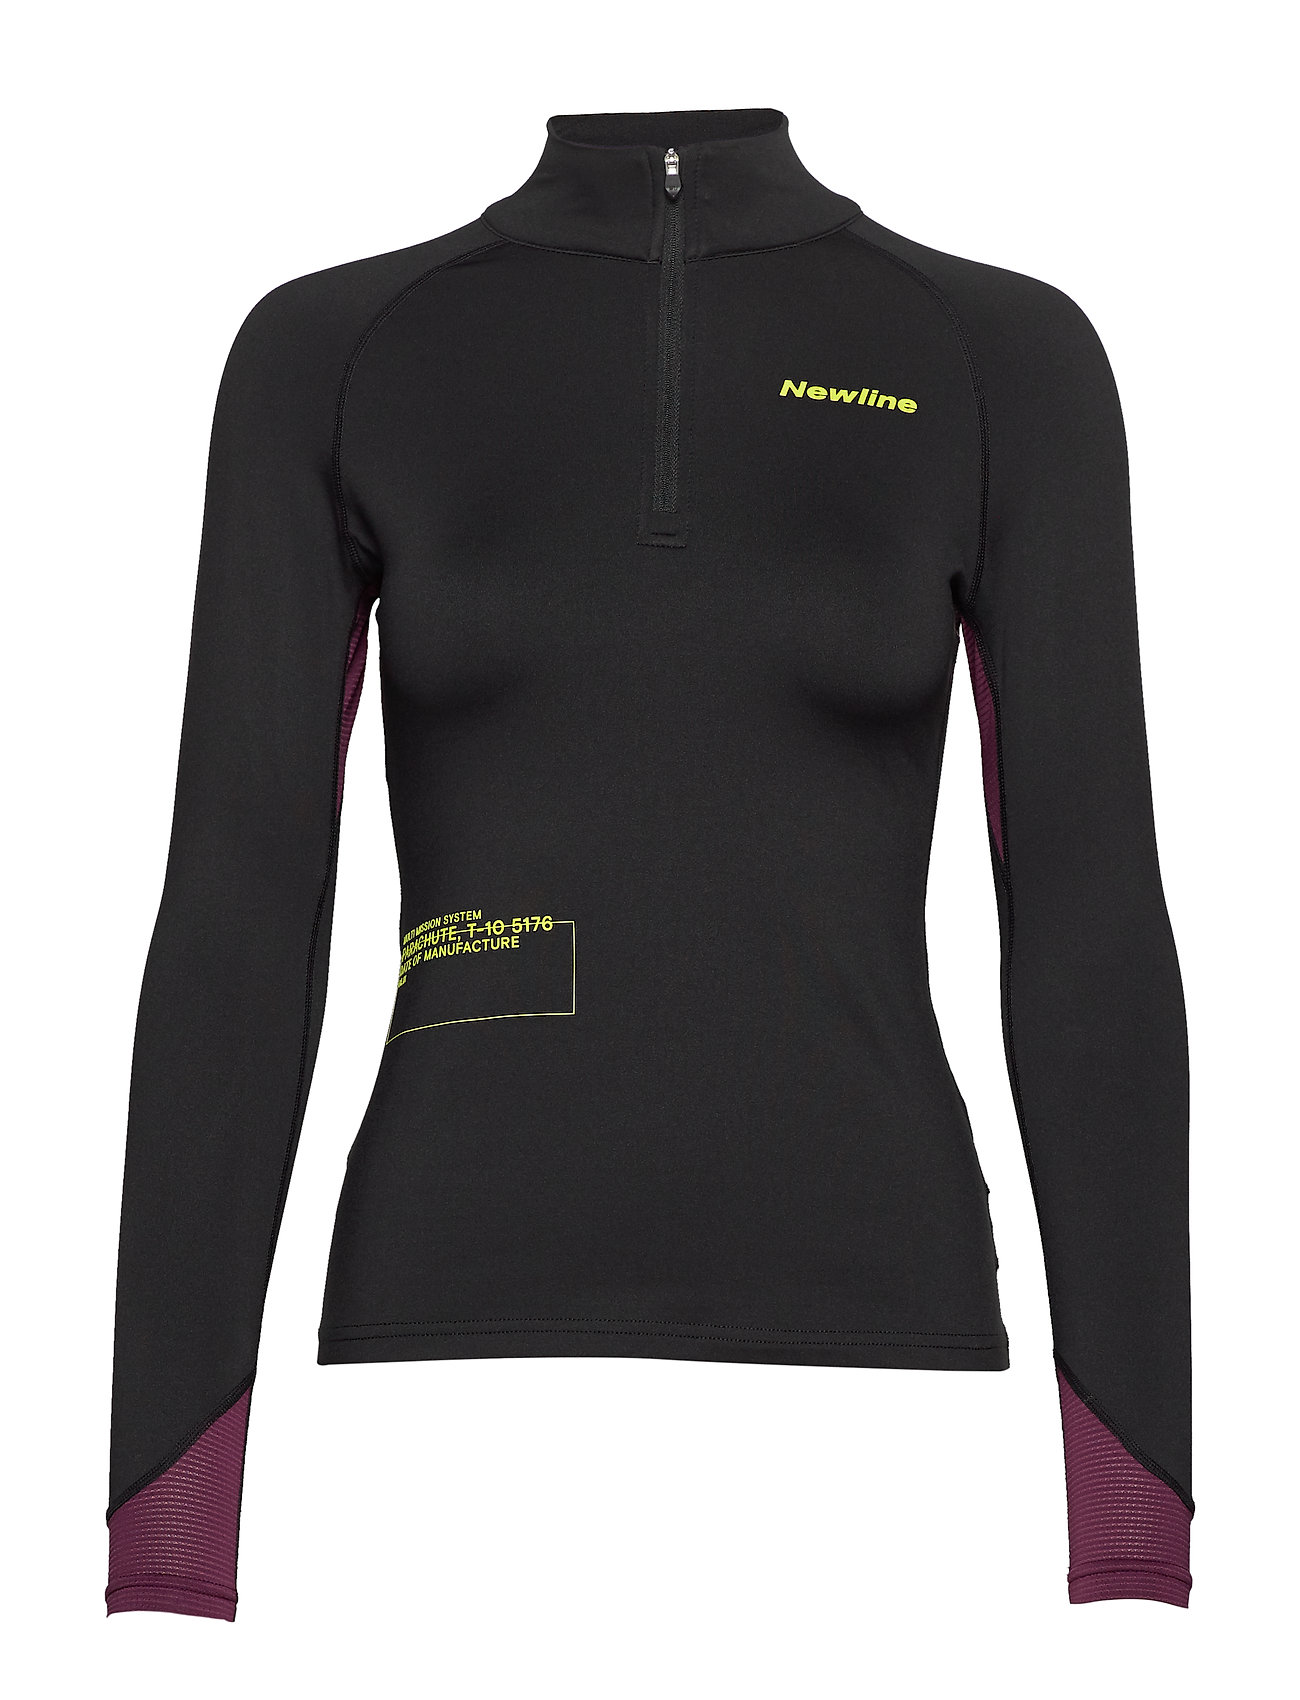 Newline Thermal Power Shirt - BLACK/BERRY